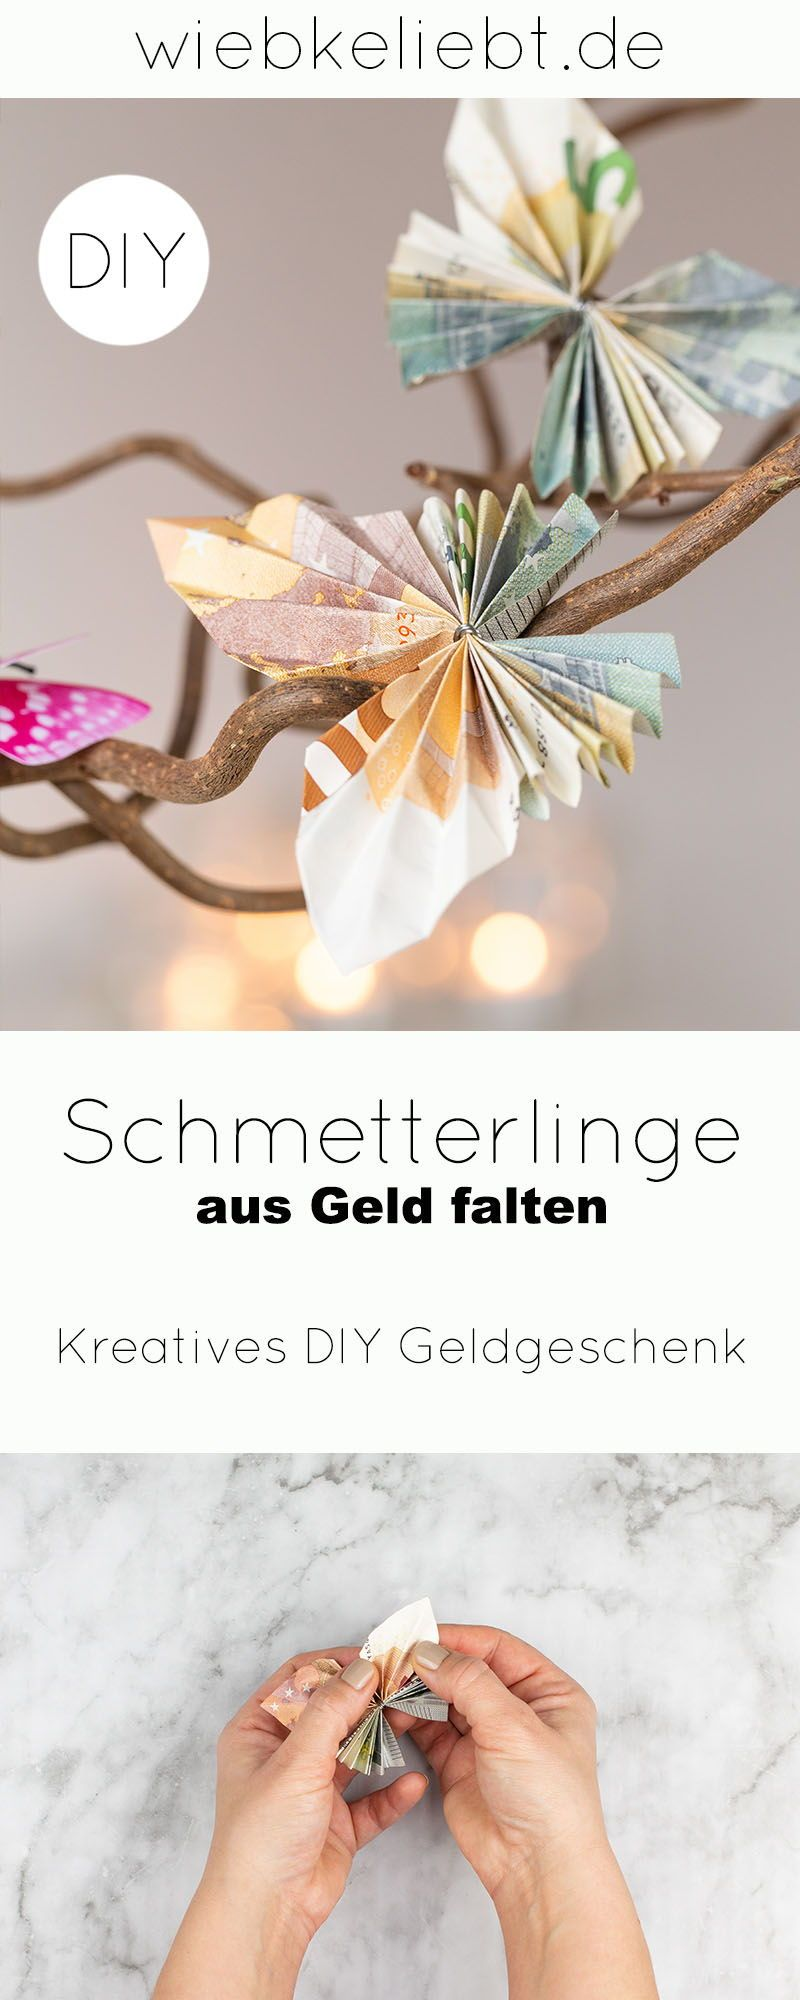 Photo of DIY: Folding butterflies out of money – Instructions for special money gifts [Werbung] | DIY Blog | D